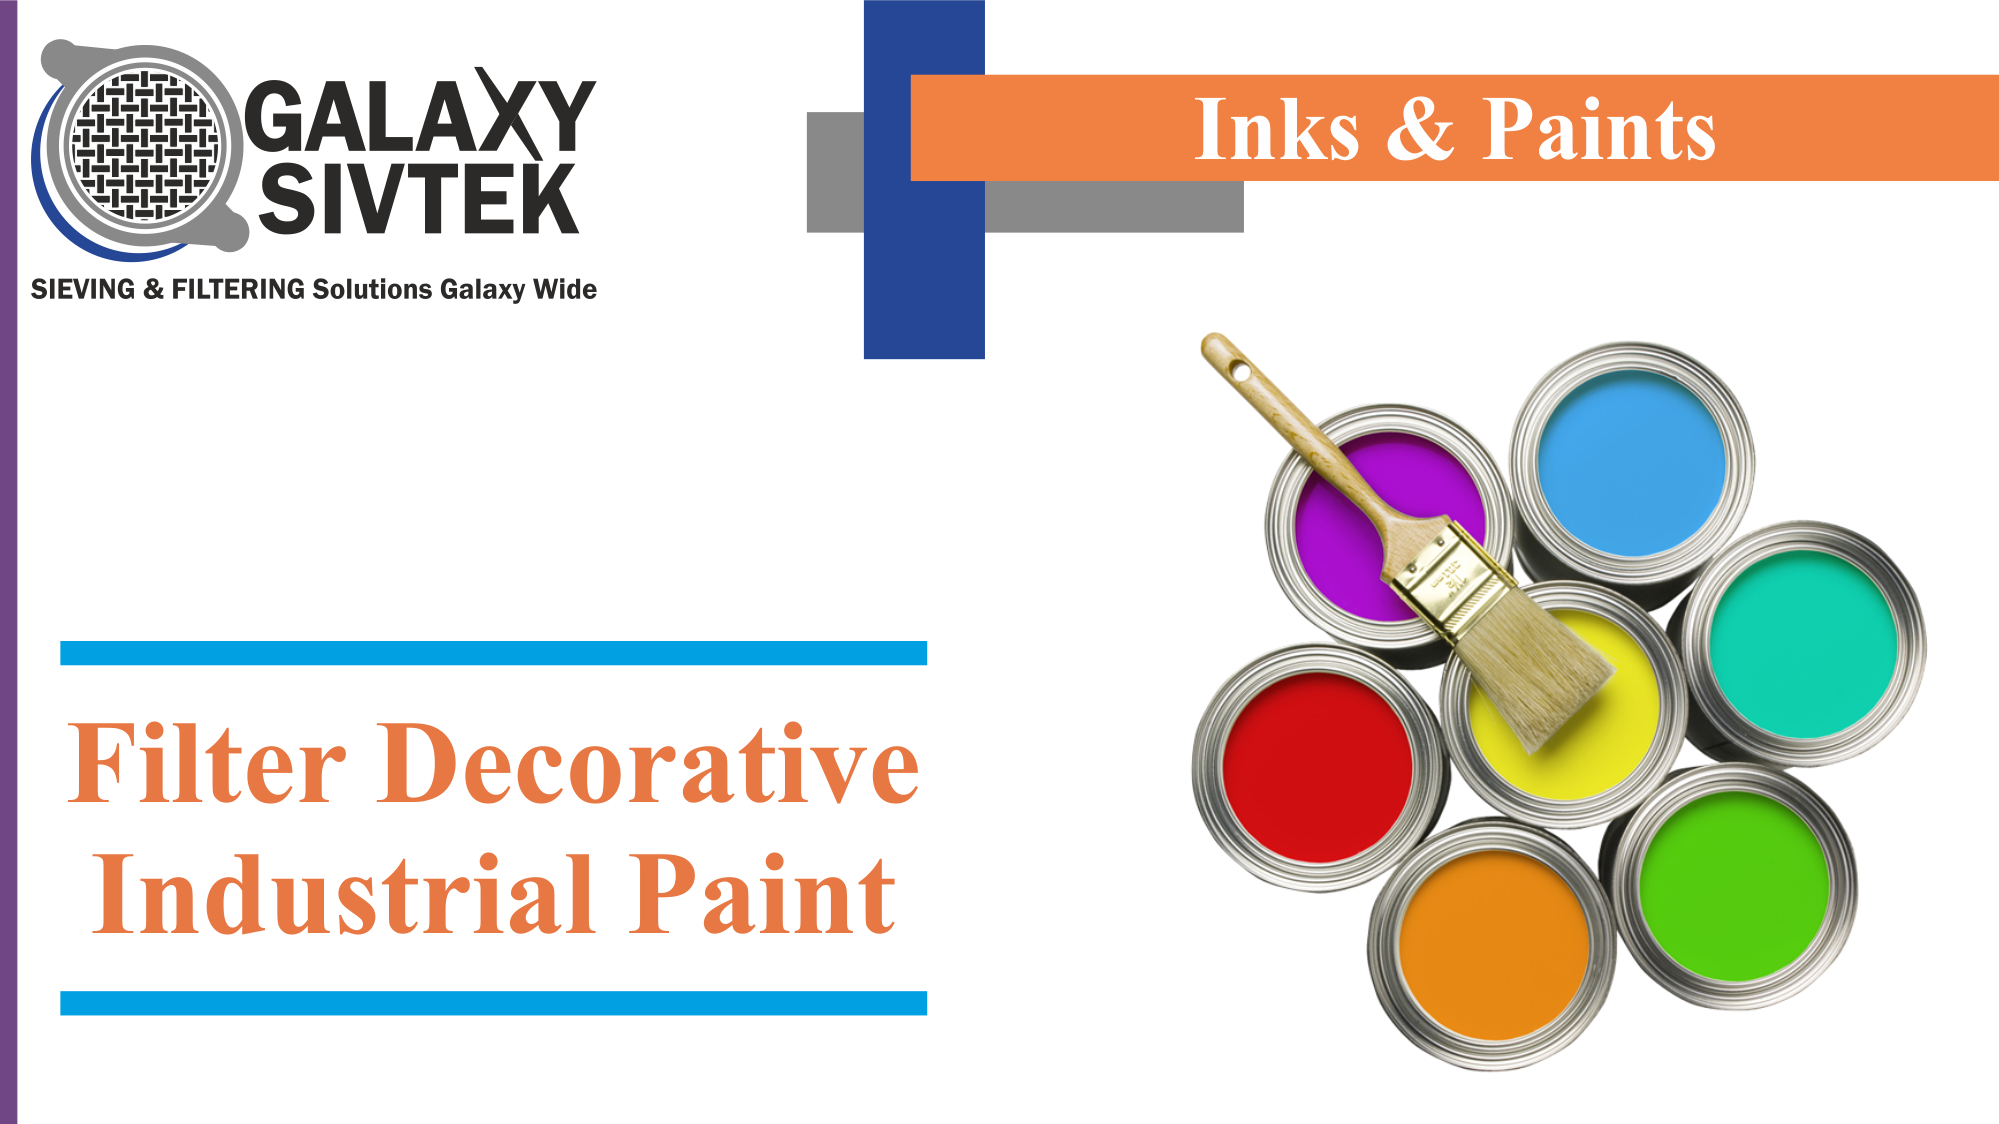 Filtration of Decorative Industrial Paint | Galaxy Sivtek